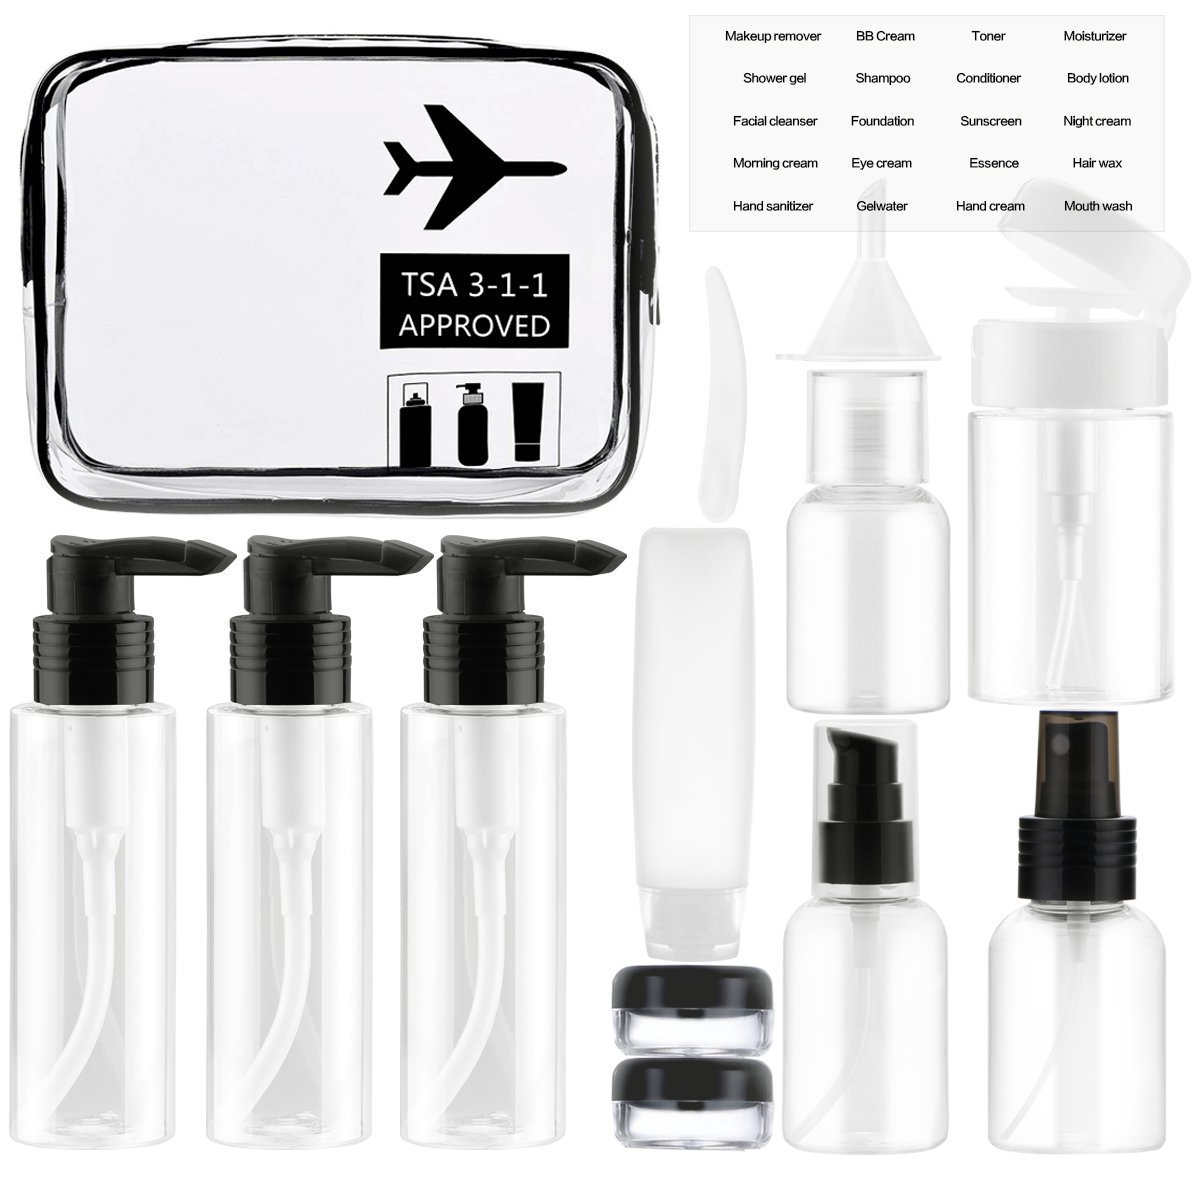 Wifzu 13PCS Travel bottles Set for Toiletries, Air Travel Size Clear Bottles and Jars for shampoo body wash Cosmetics with 1 TSA approved Clear zipper bag (black)